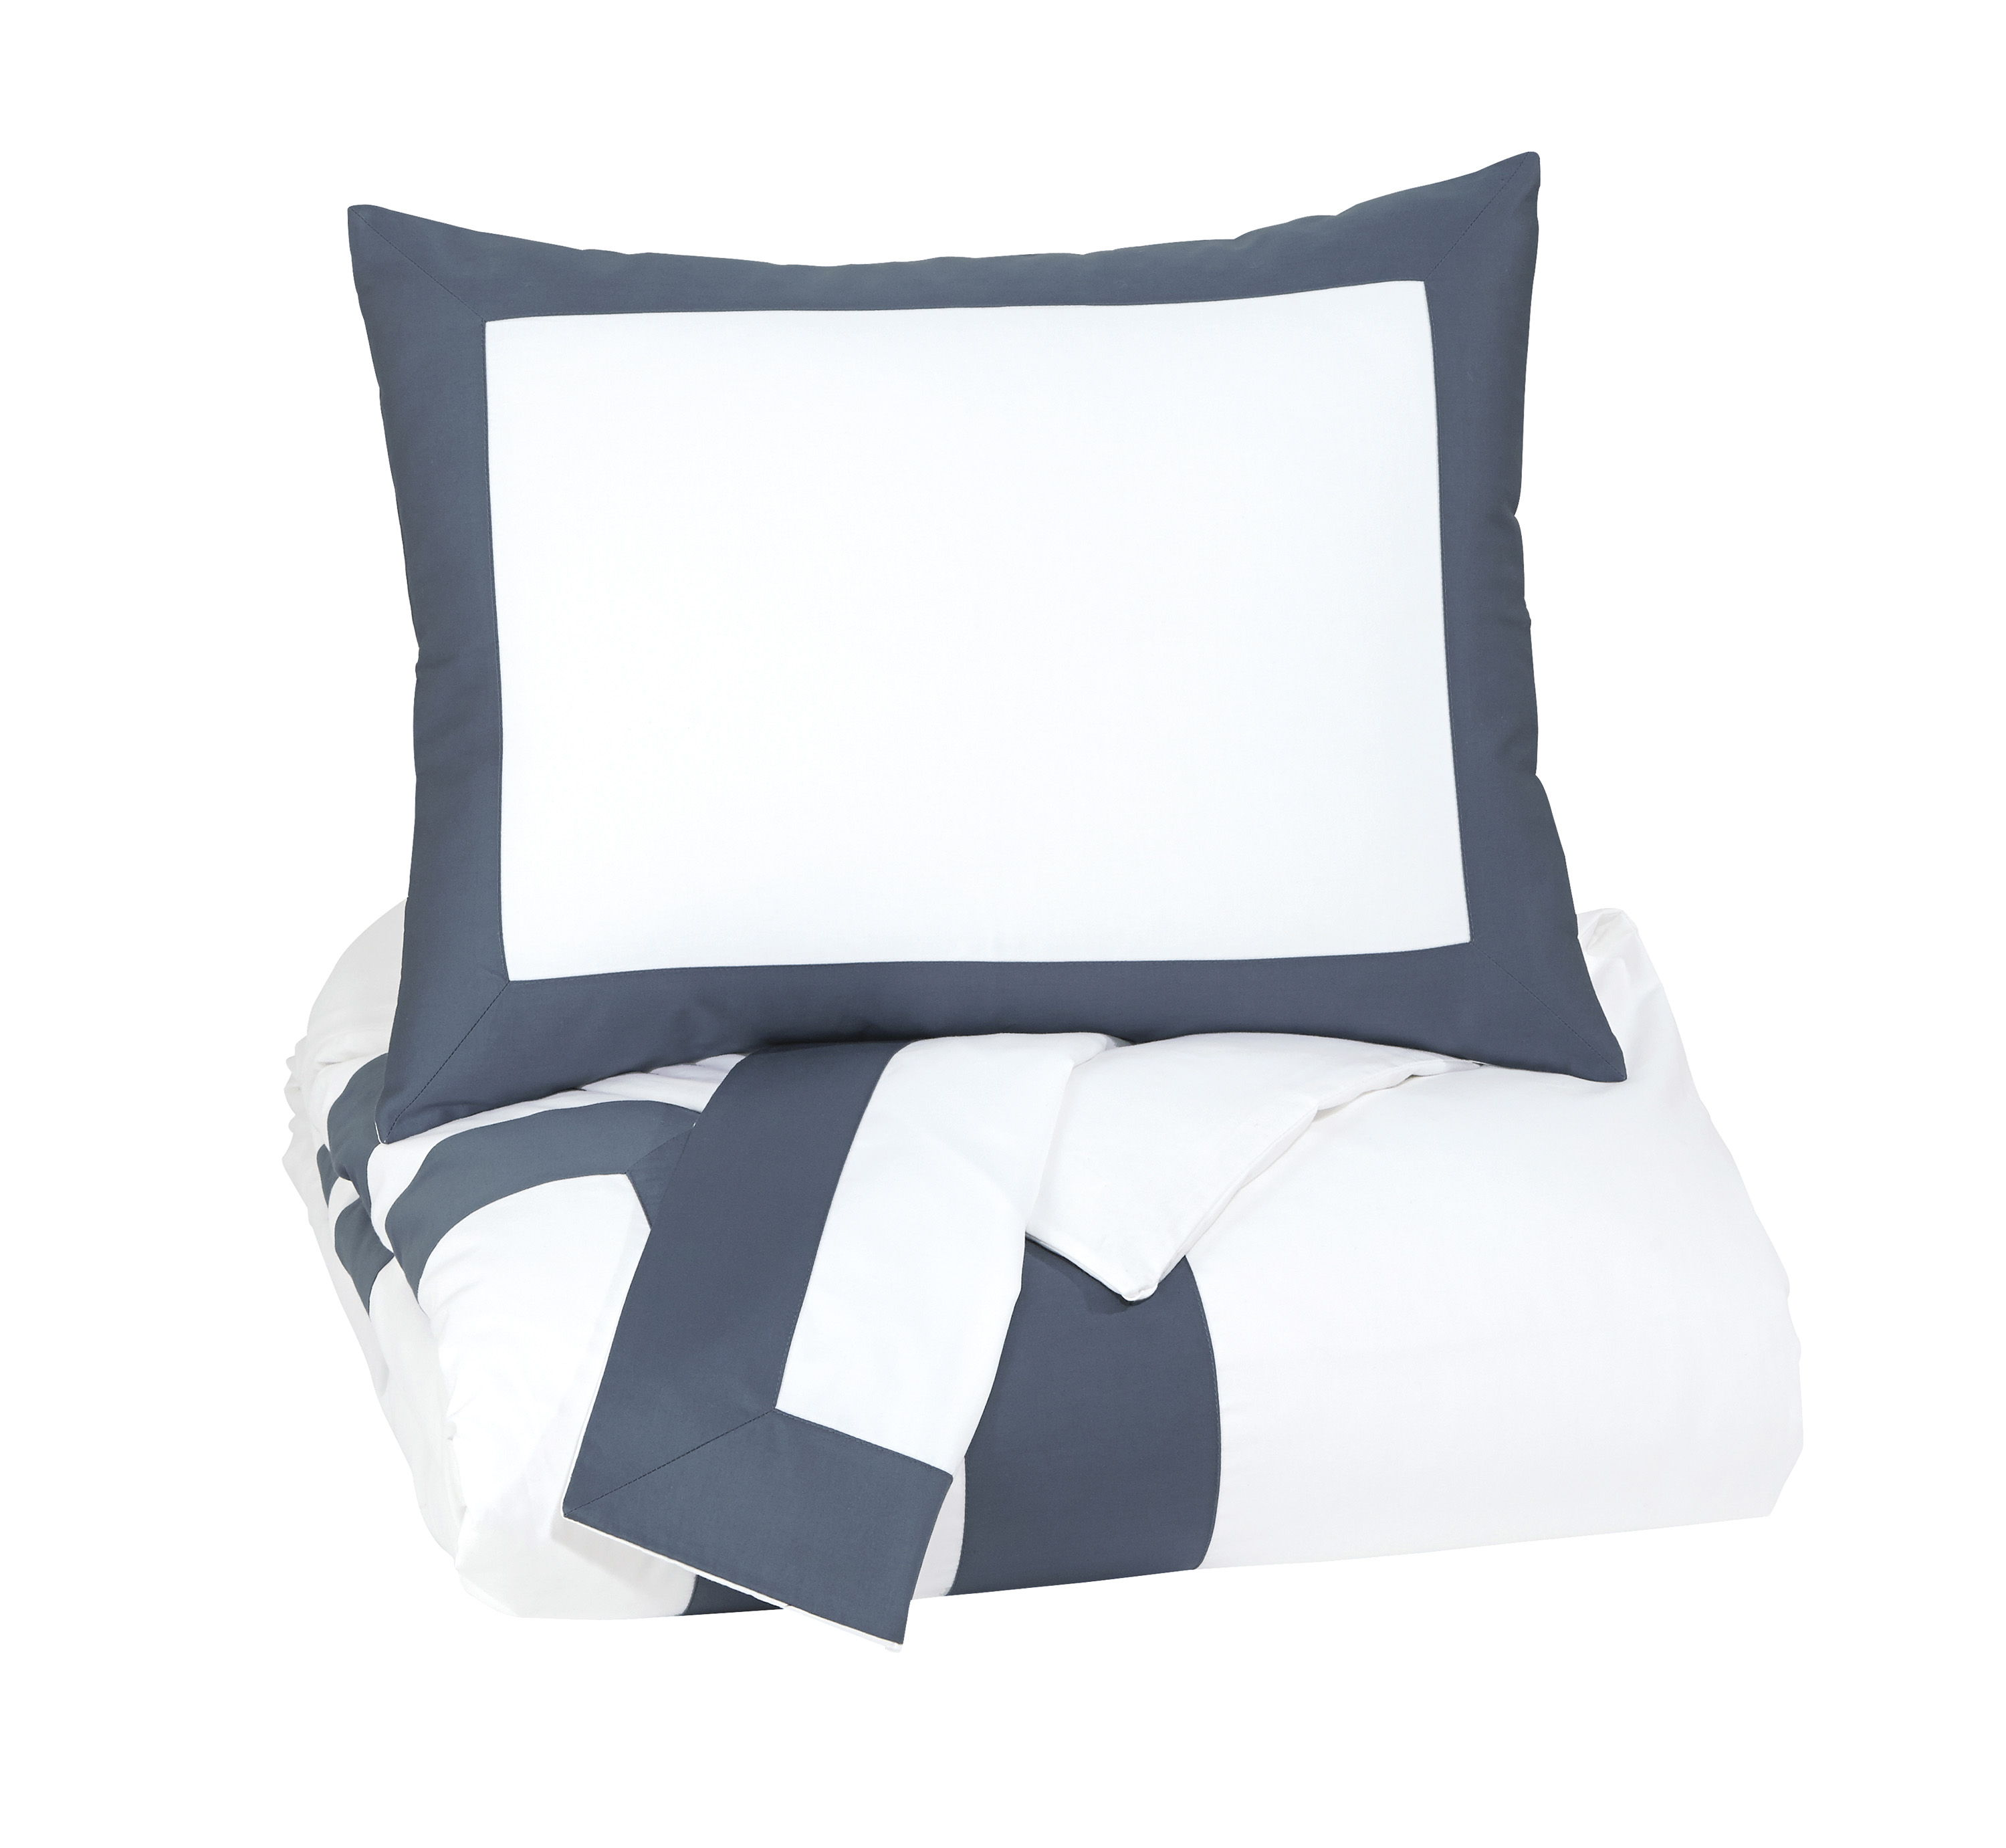 Ashley Furniture Daruka Blue Queen Duvet Cover Set | The Classy Home